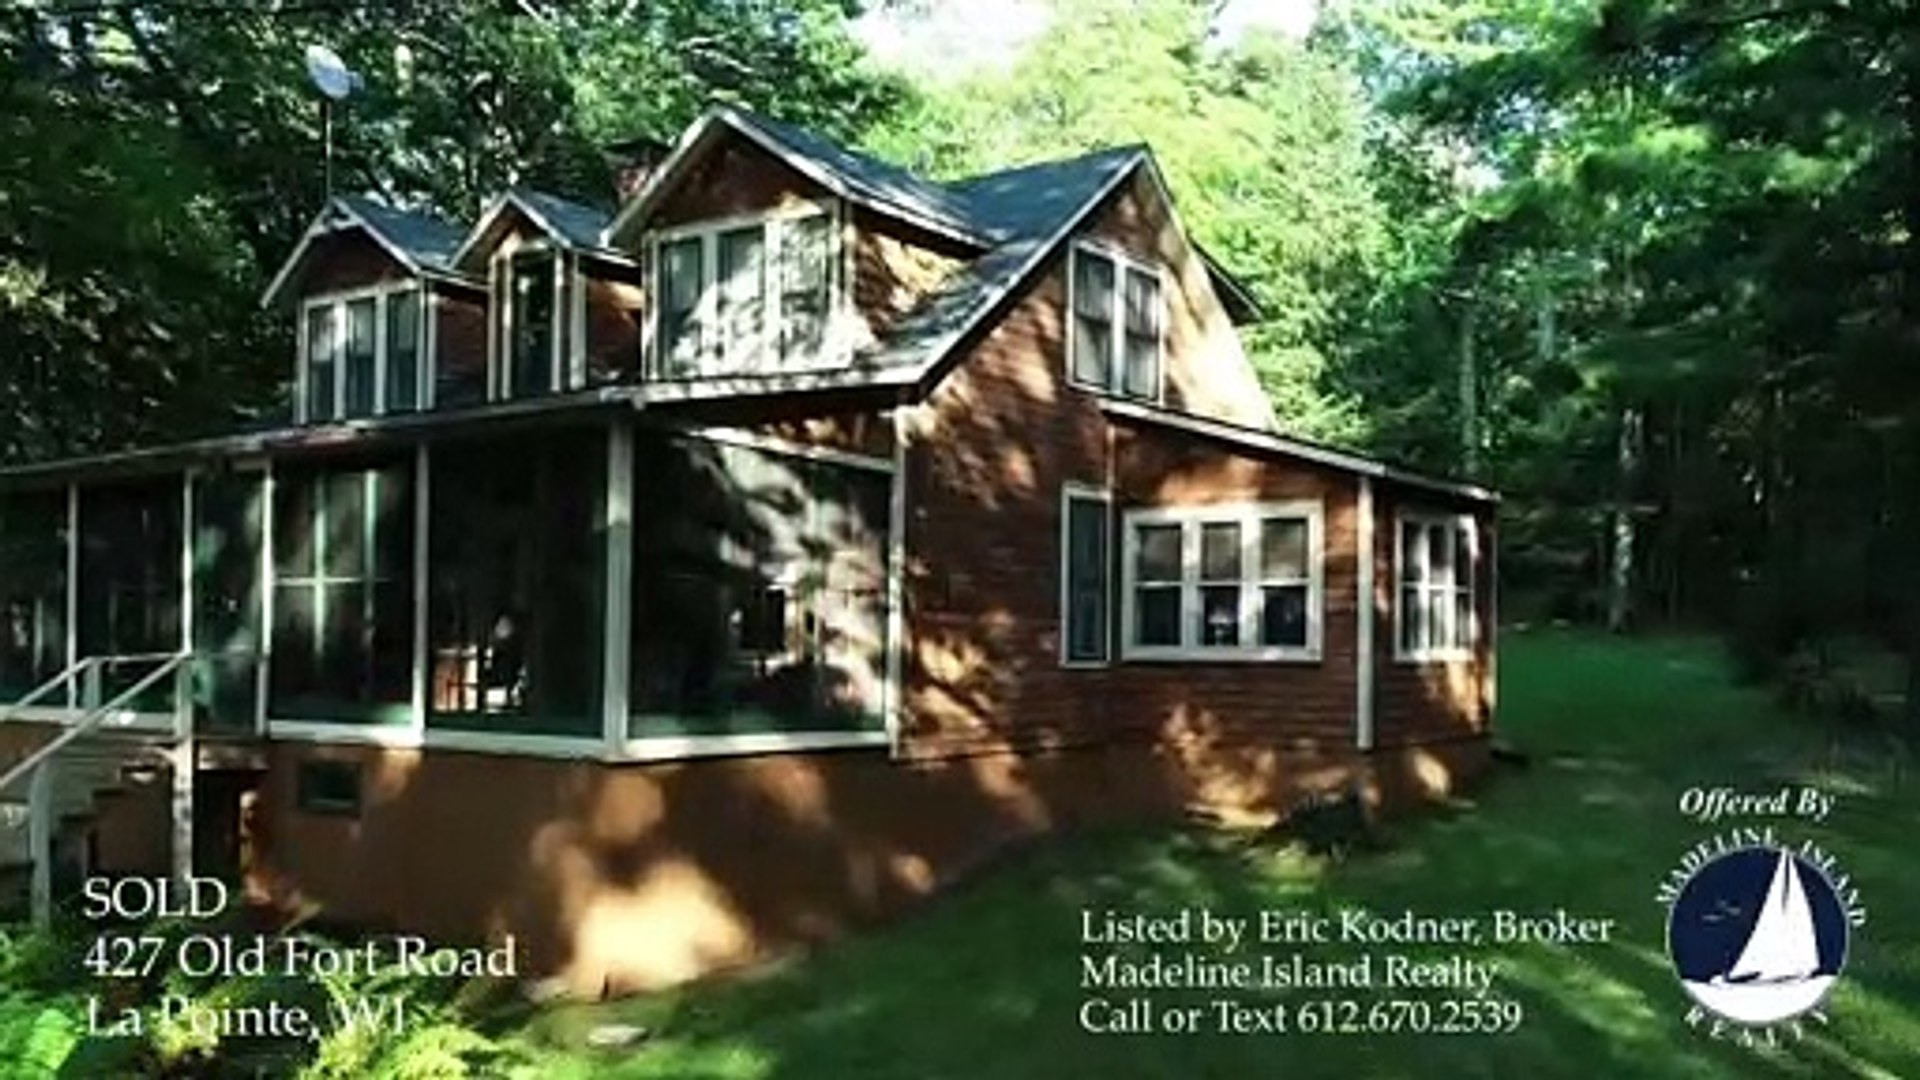 427 Old Fort Road, LaPointe WI SOLD by Madeline Island Realty